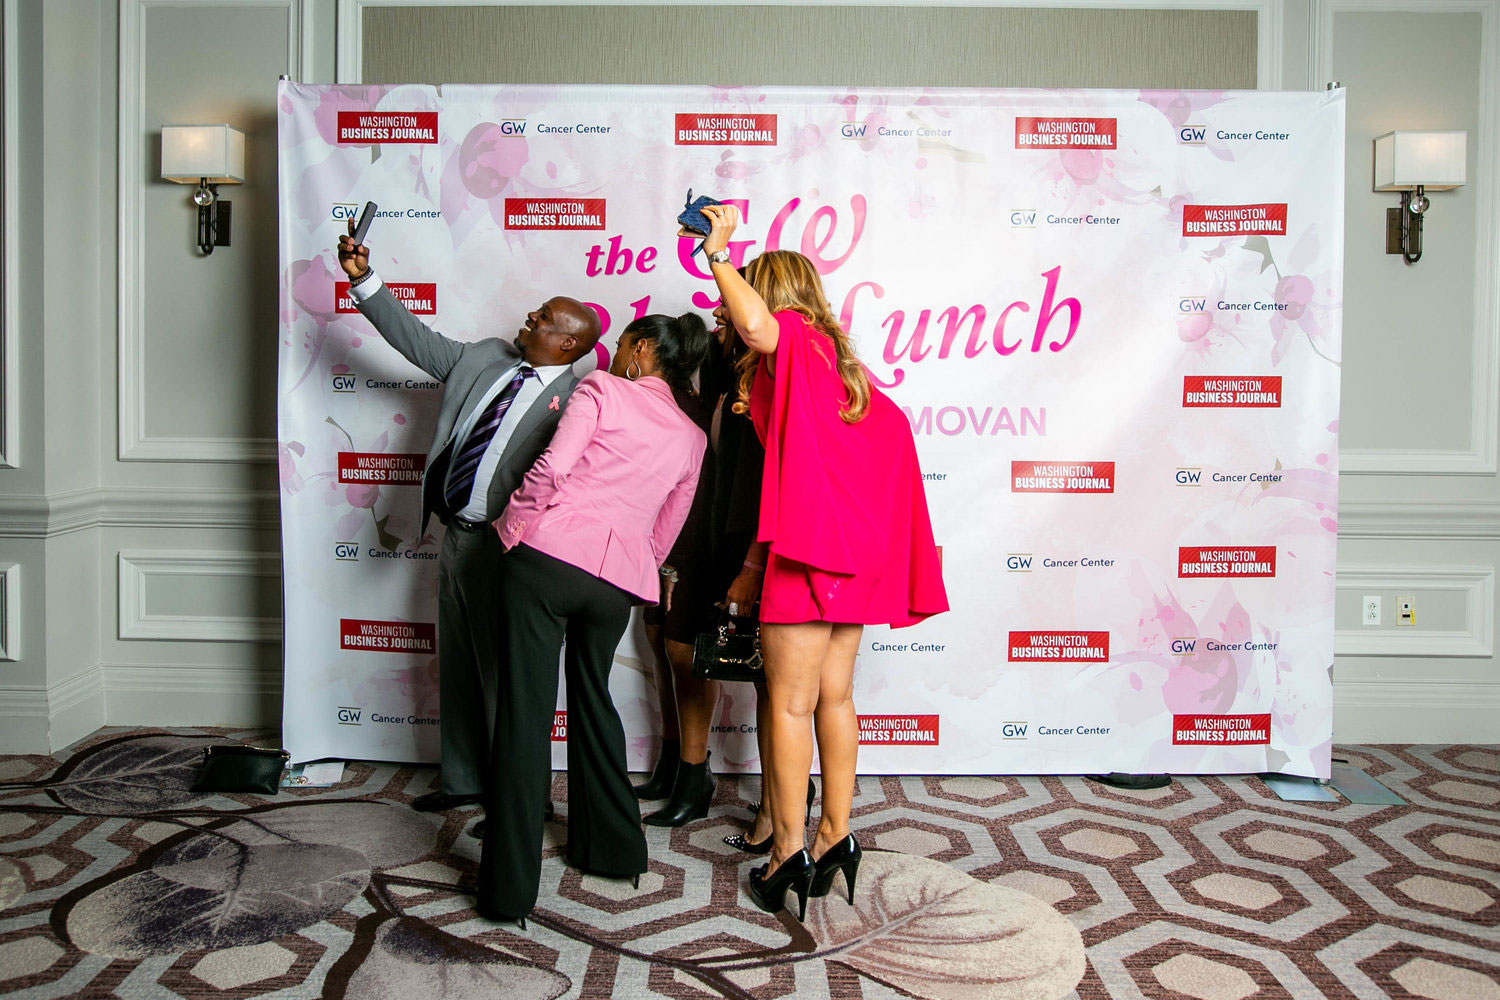 blush lunch attendees take selfies